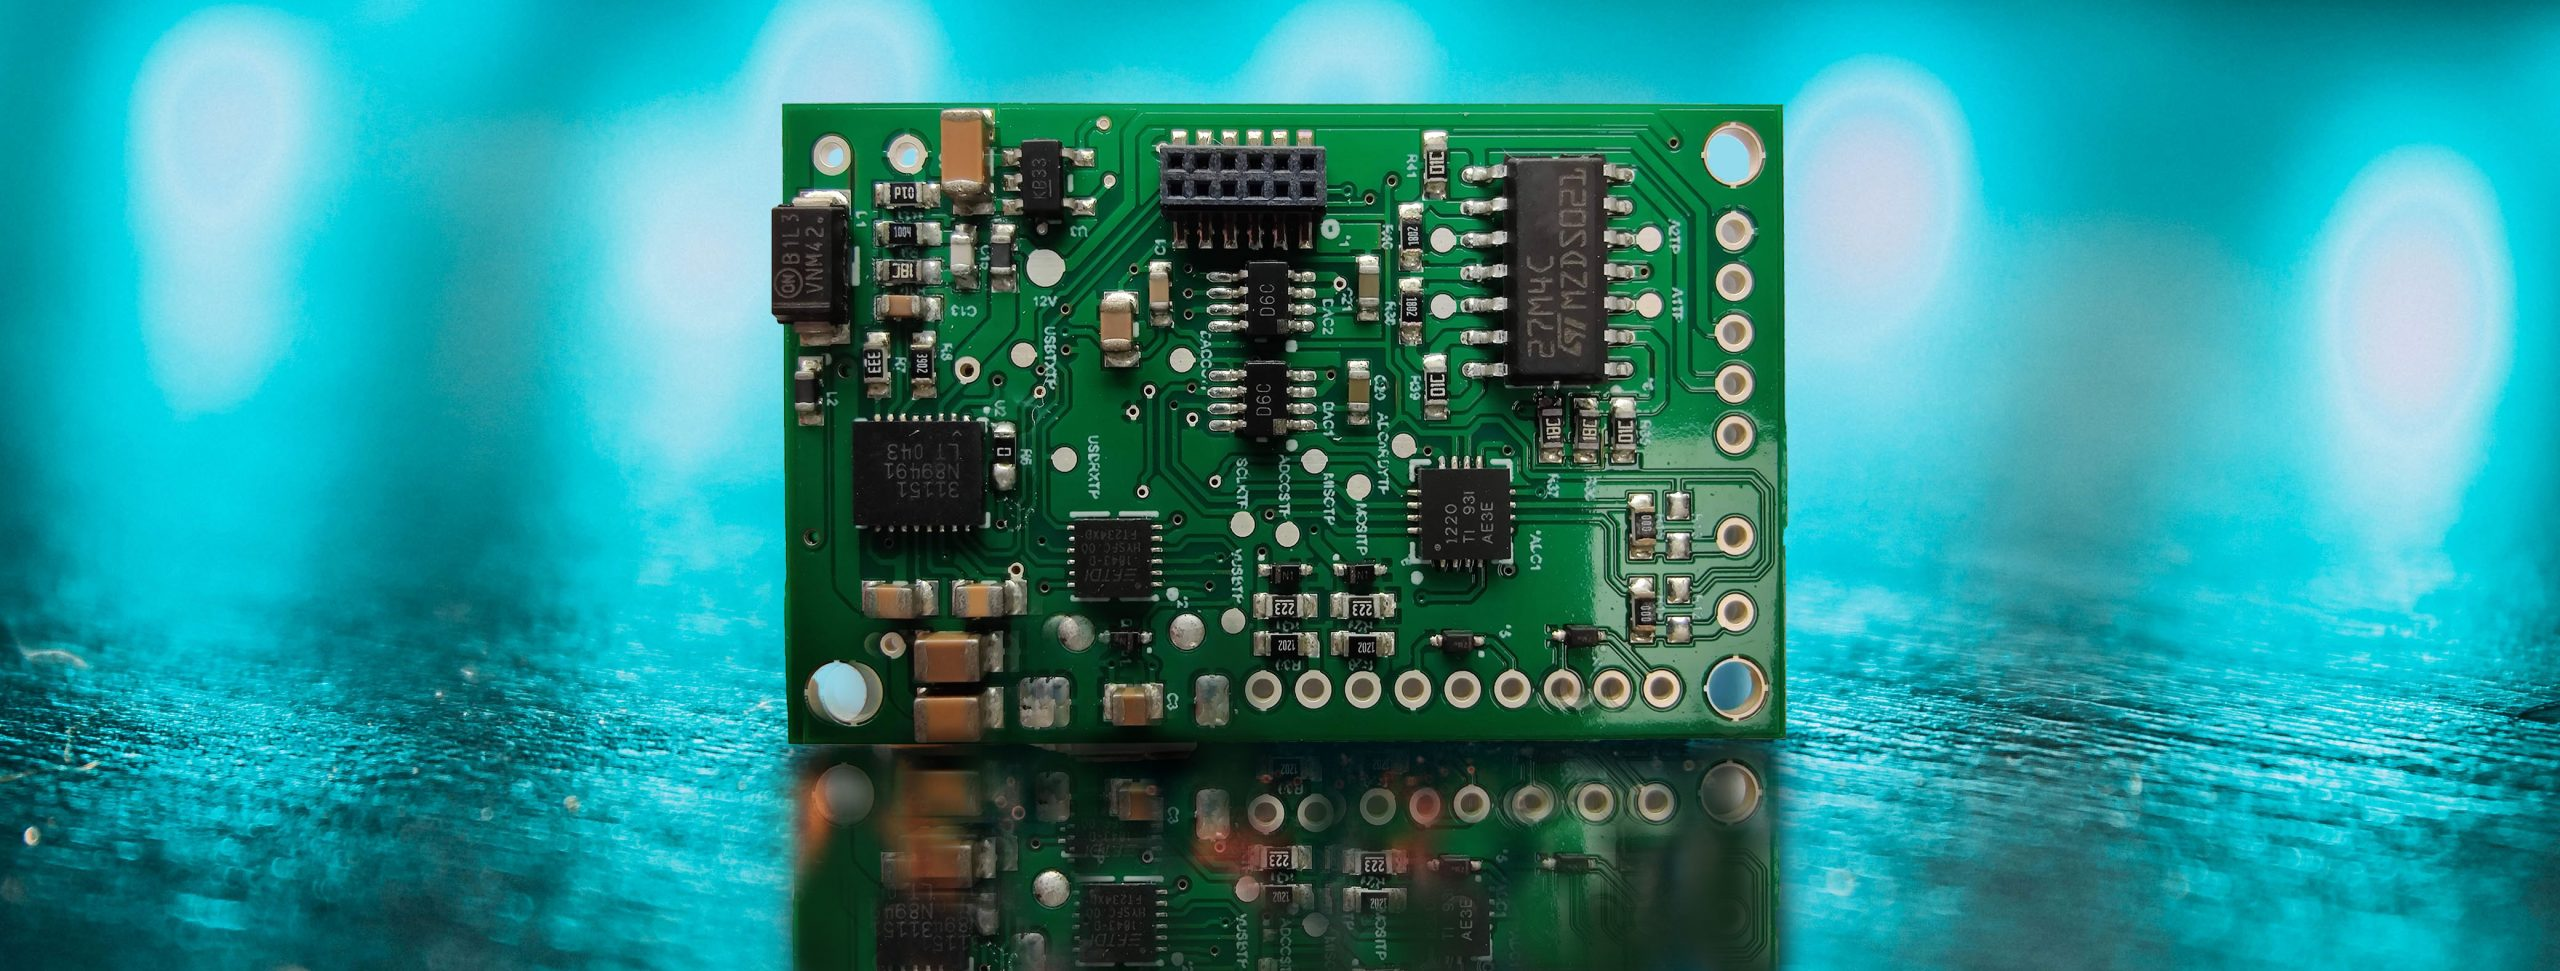 engineering-design-and-manufacturing-ice-electronics-wireless-link